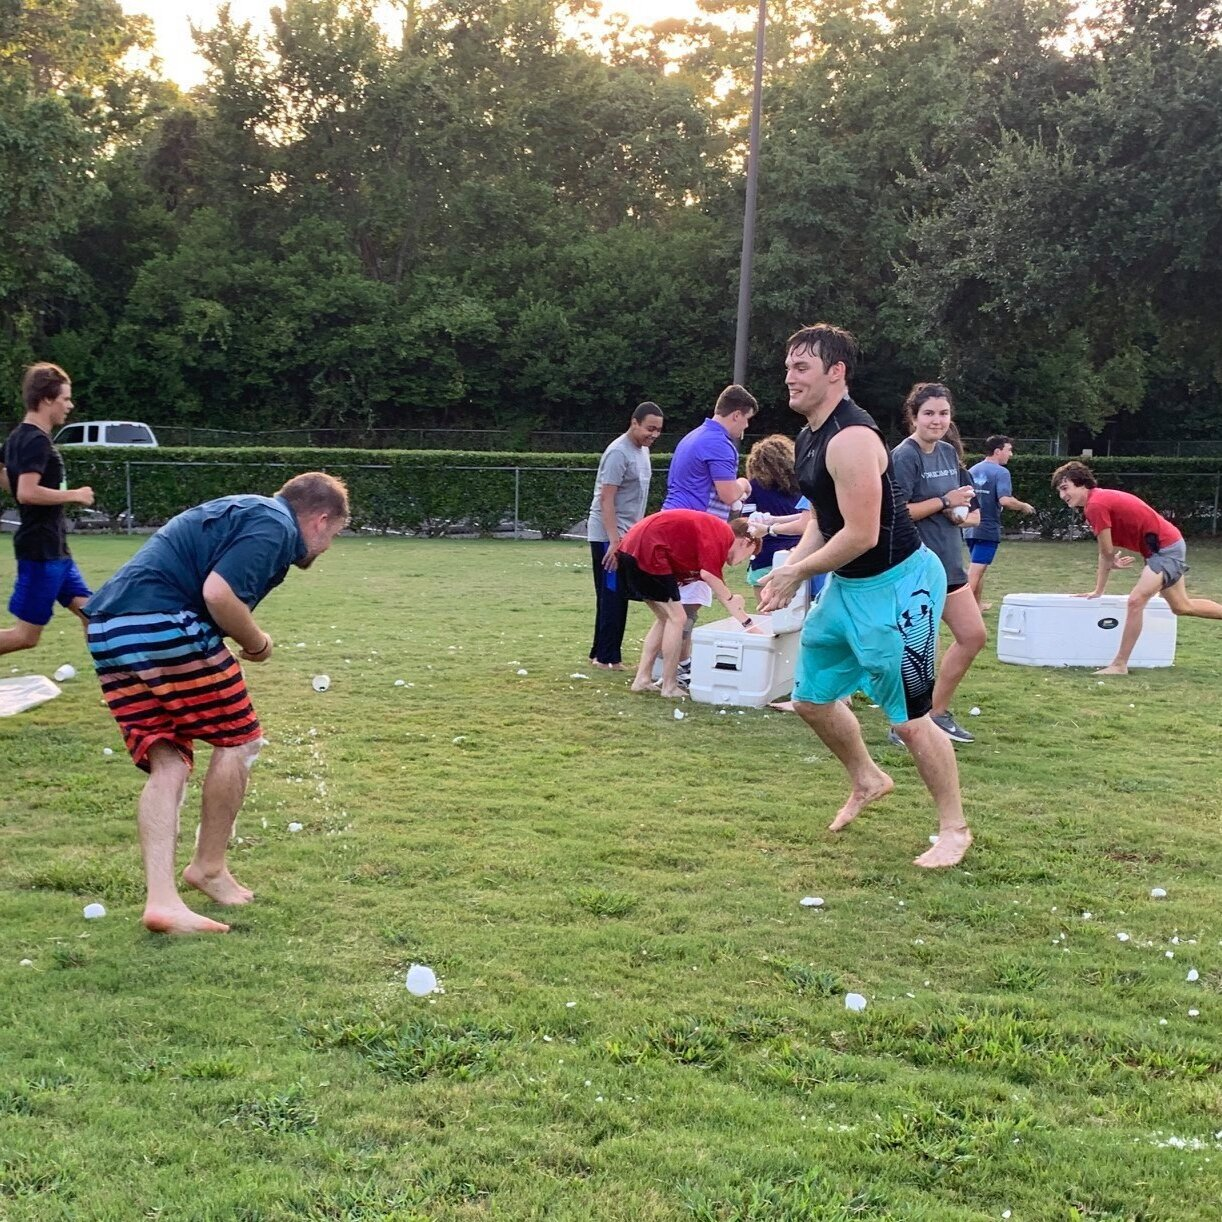 Youth Ministry - Our aim is to help students continually cultivate a desire to discover and develop a meaningful relationship with Jesus Christ.